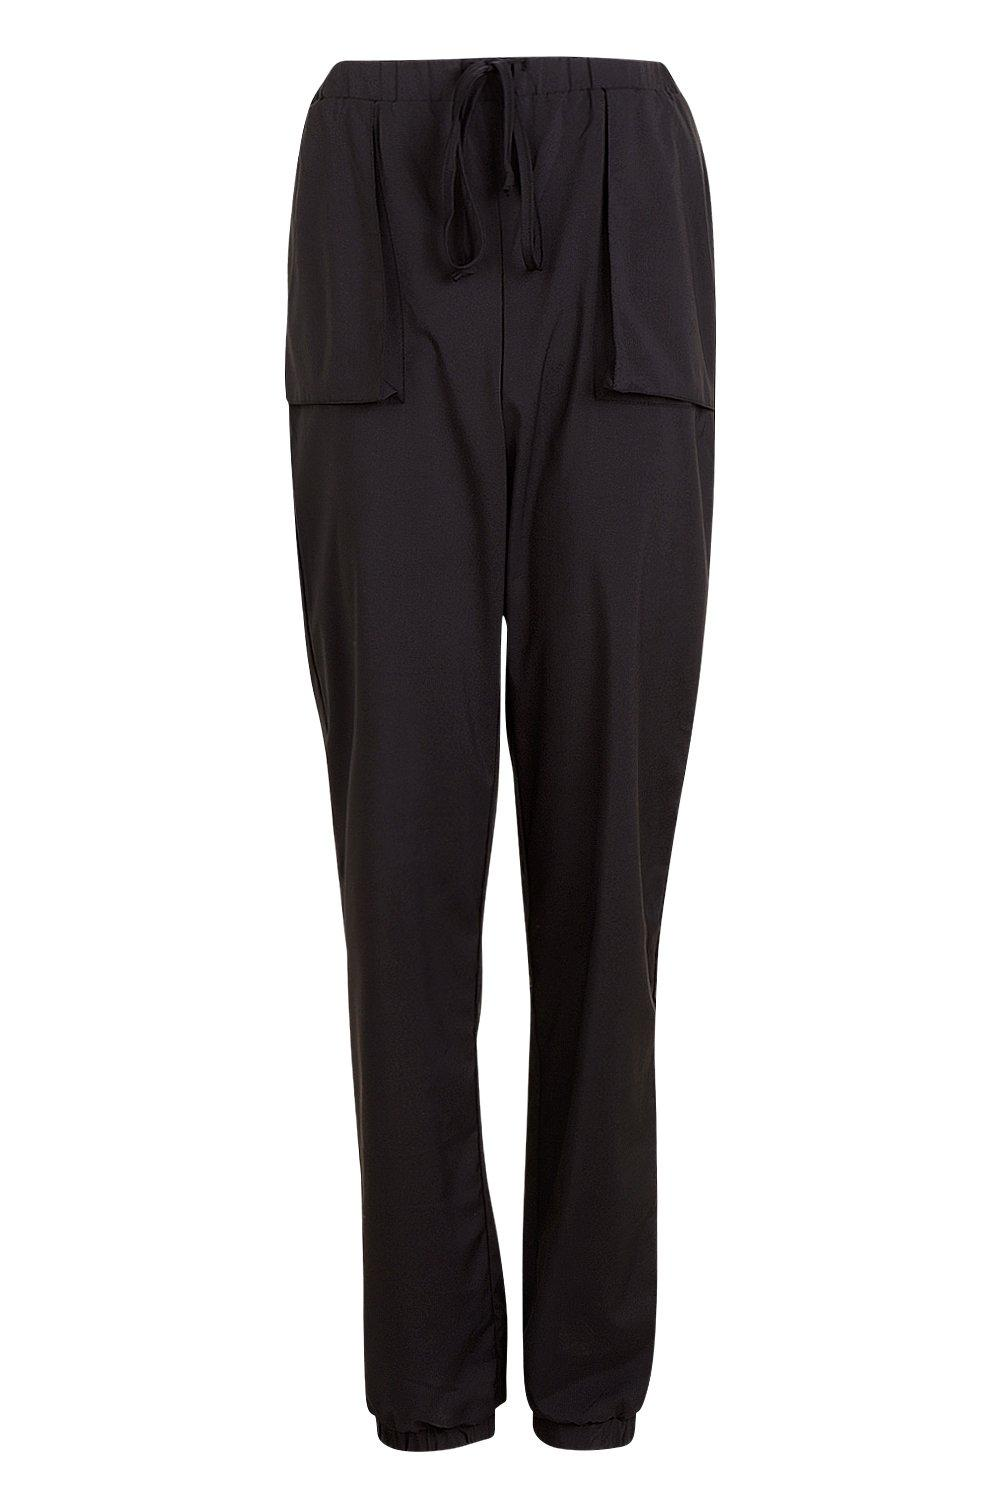 Tall Cargo Cargo black Tall Trousers awaqrfE